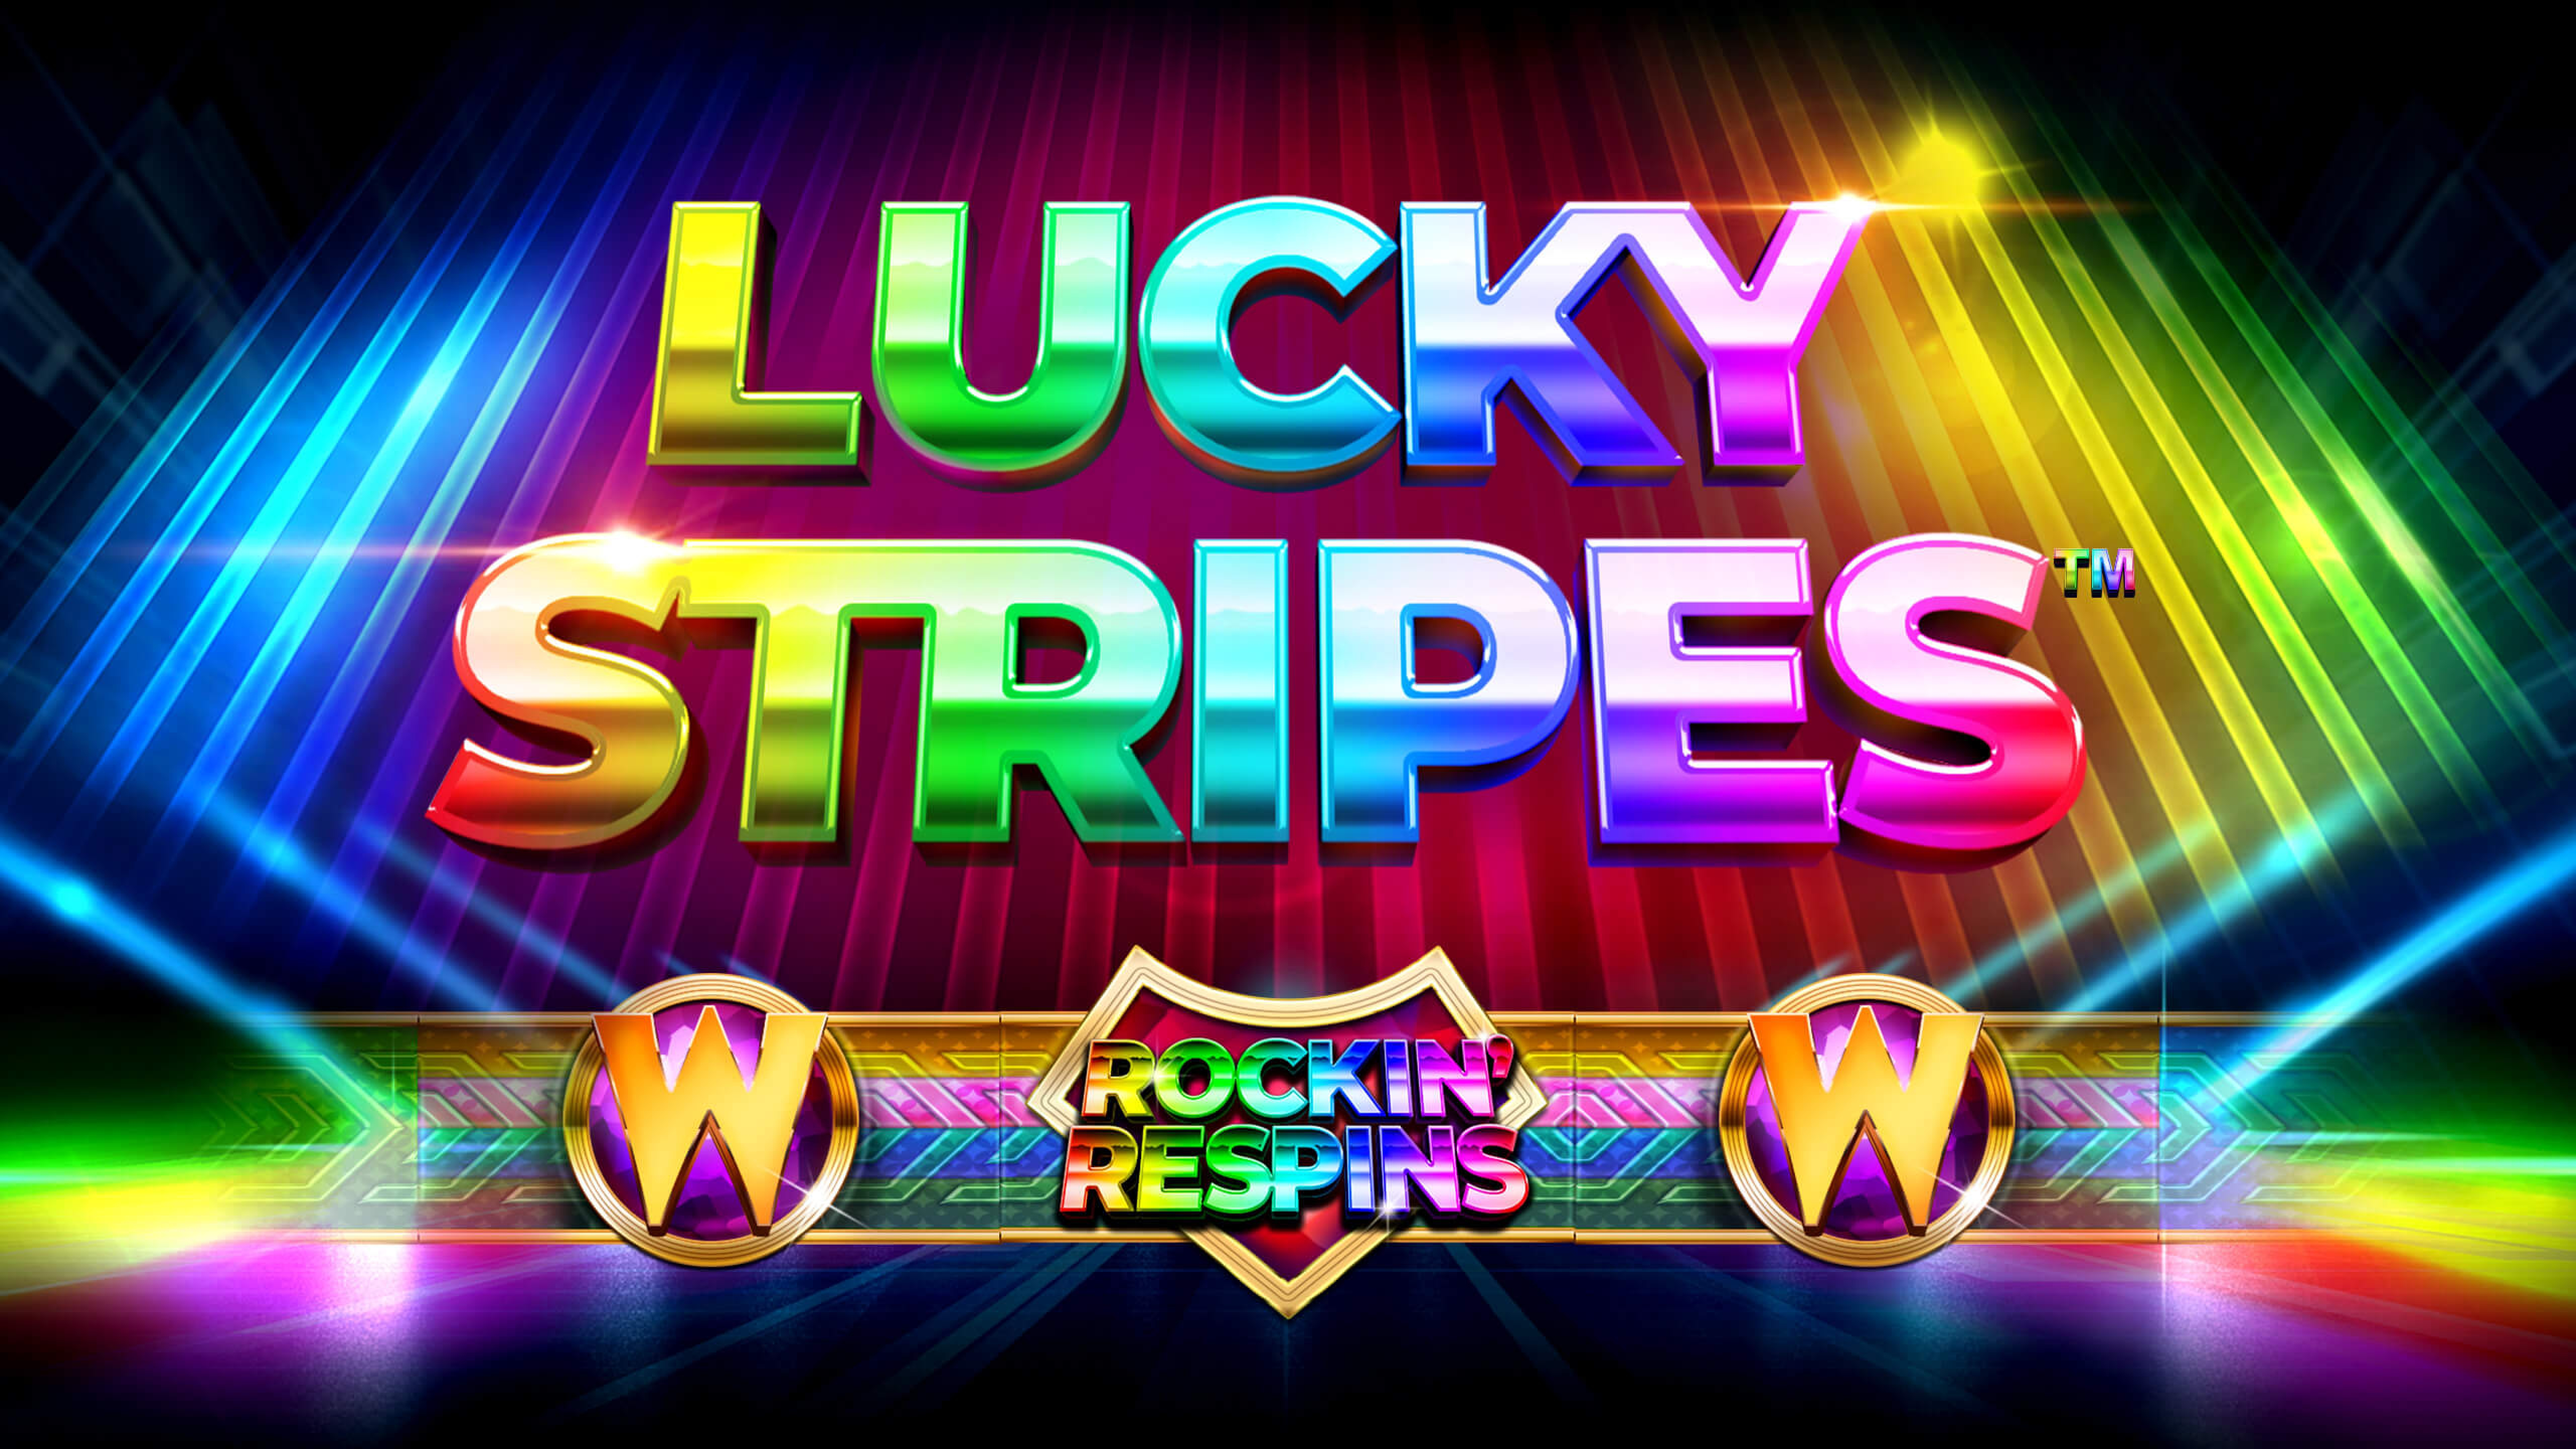 The Lucky Stripes Online Slot Demo Game by iSoftBet